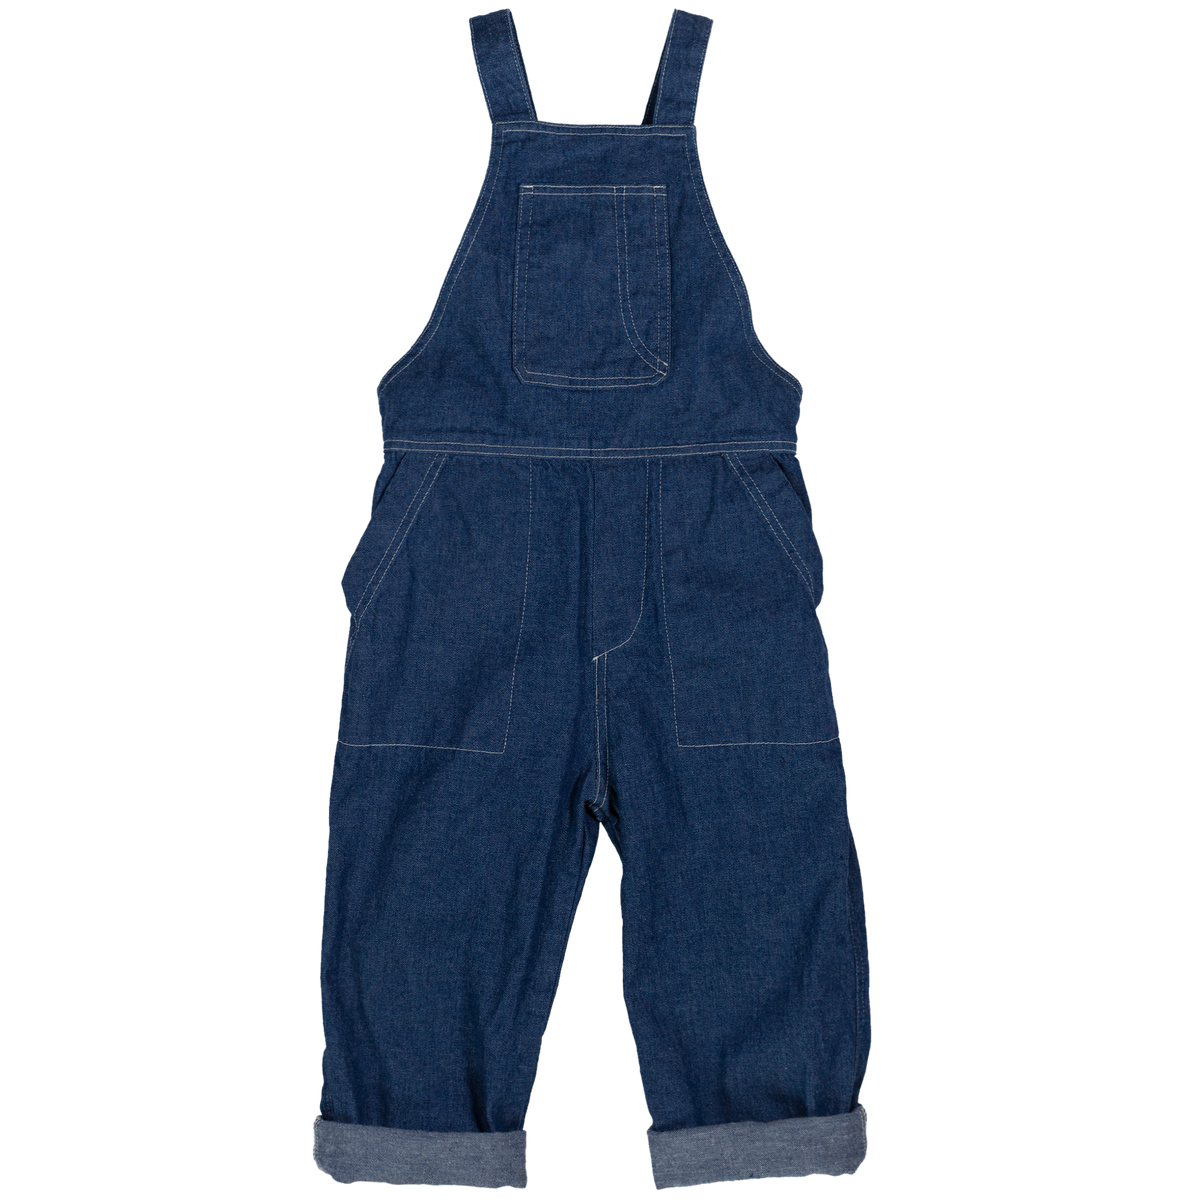 Japanese Denim Overalls